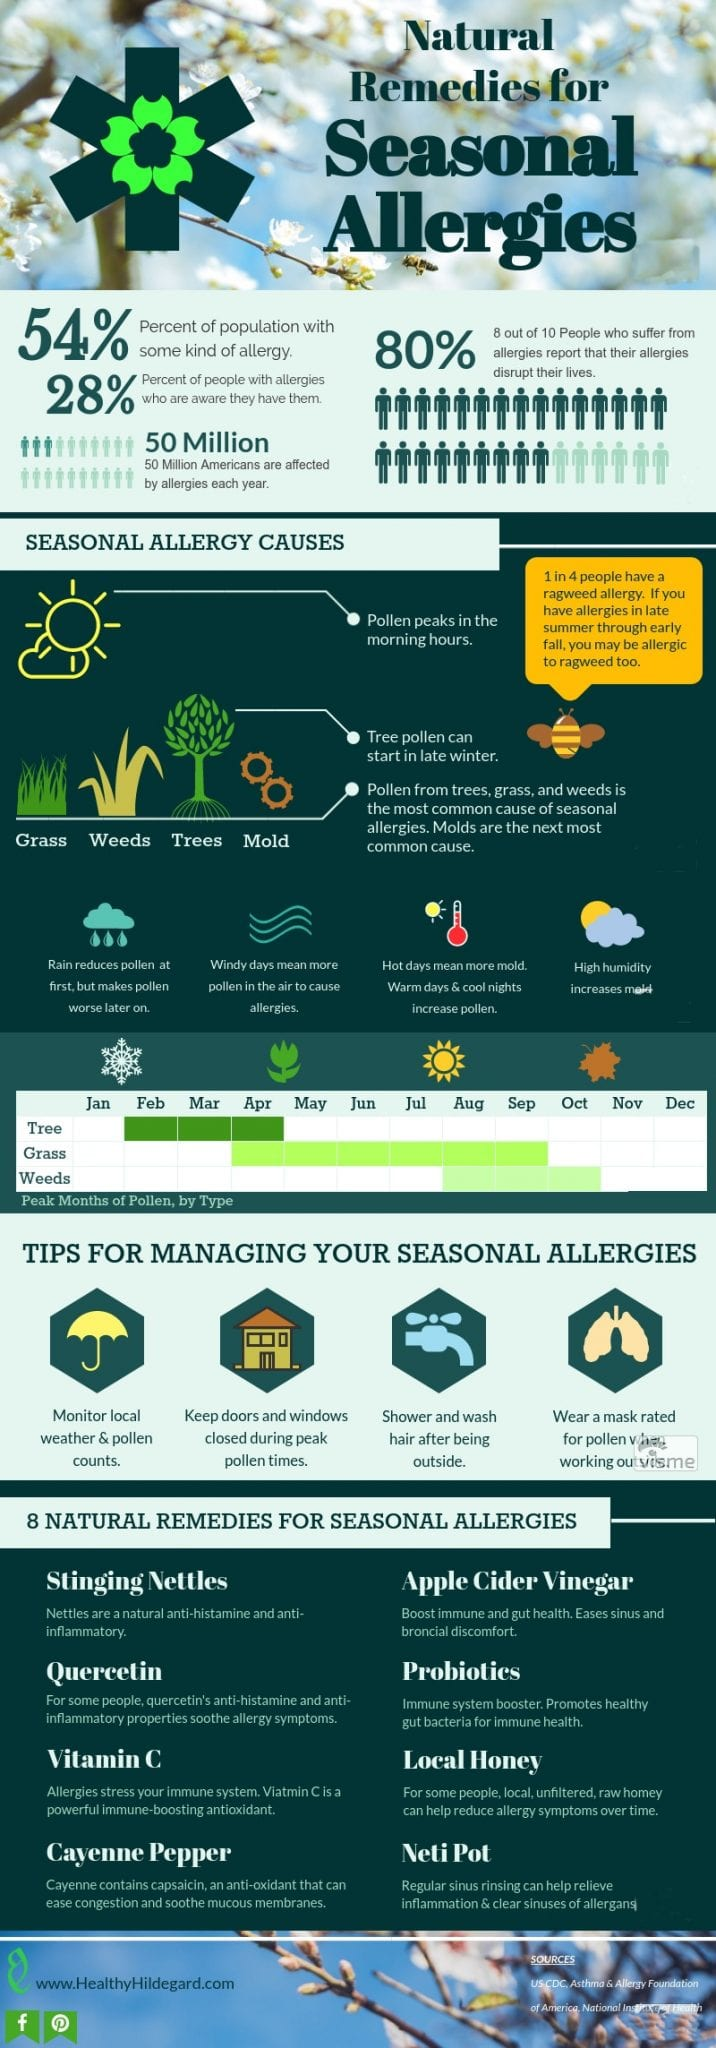 Seasonal Allergies Infographic